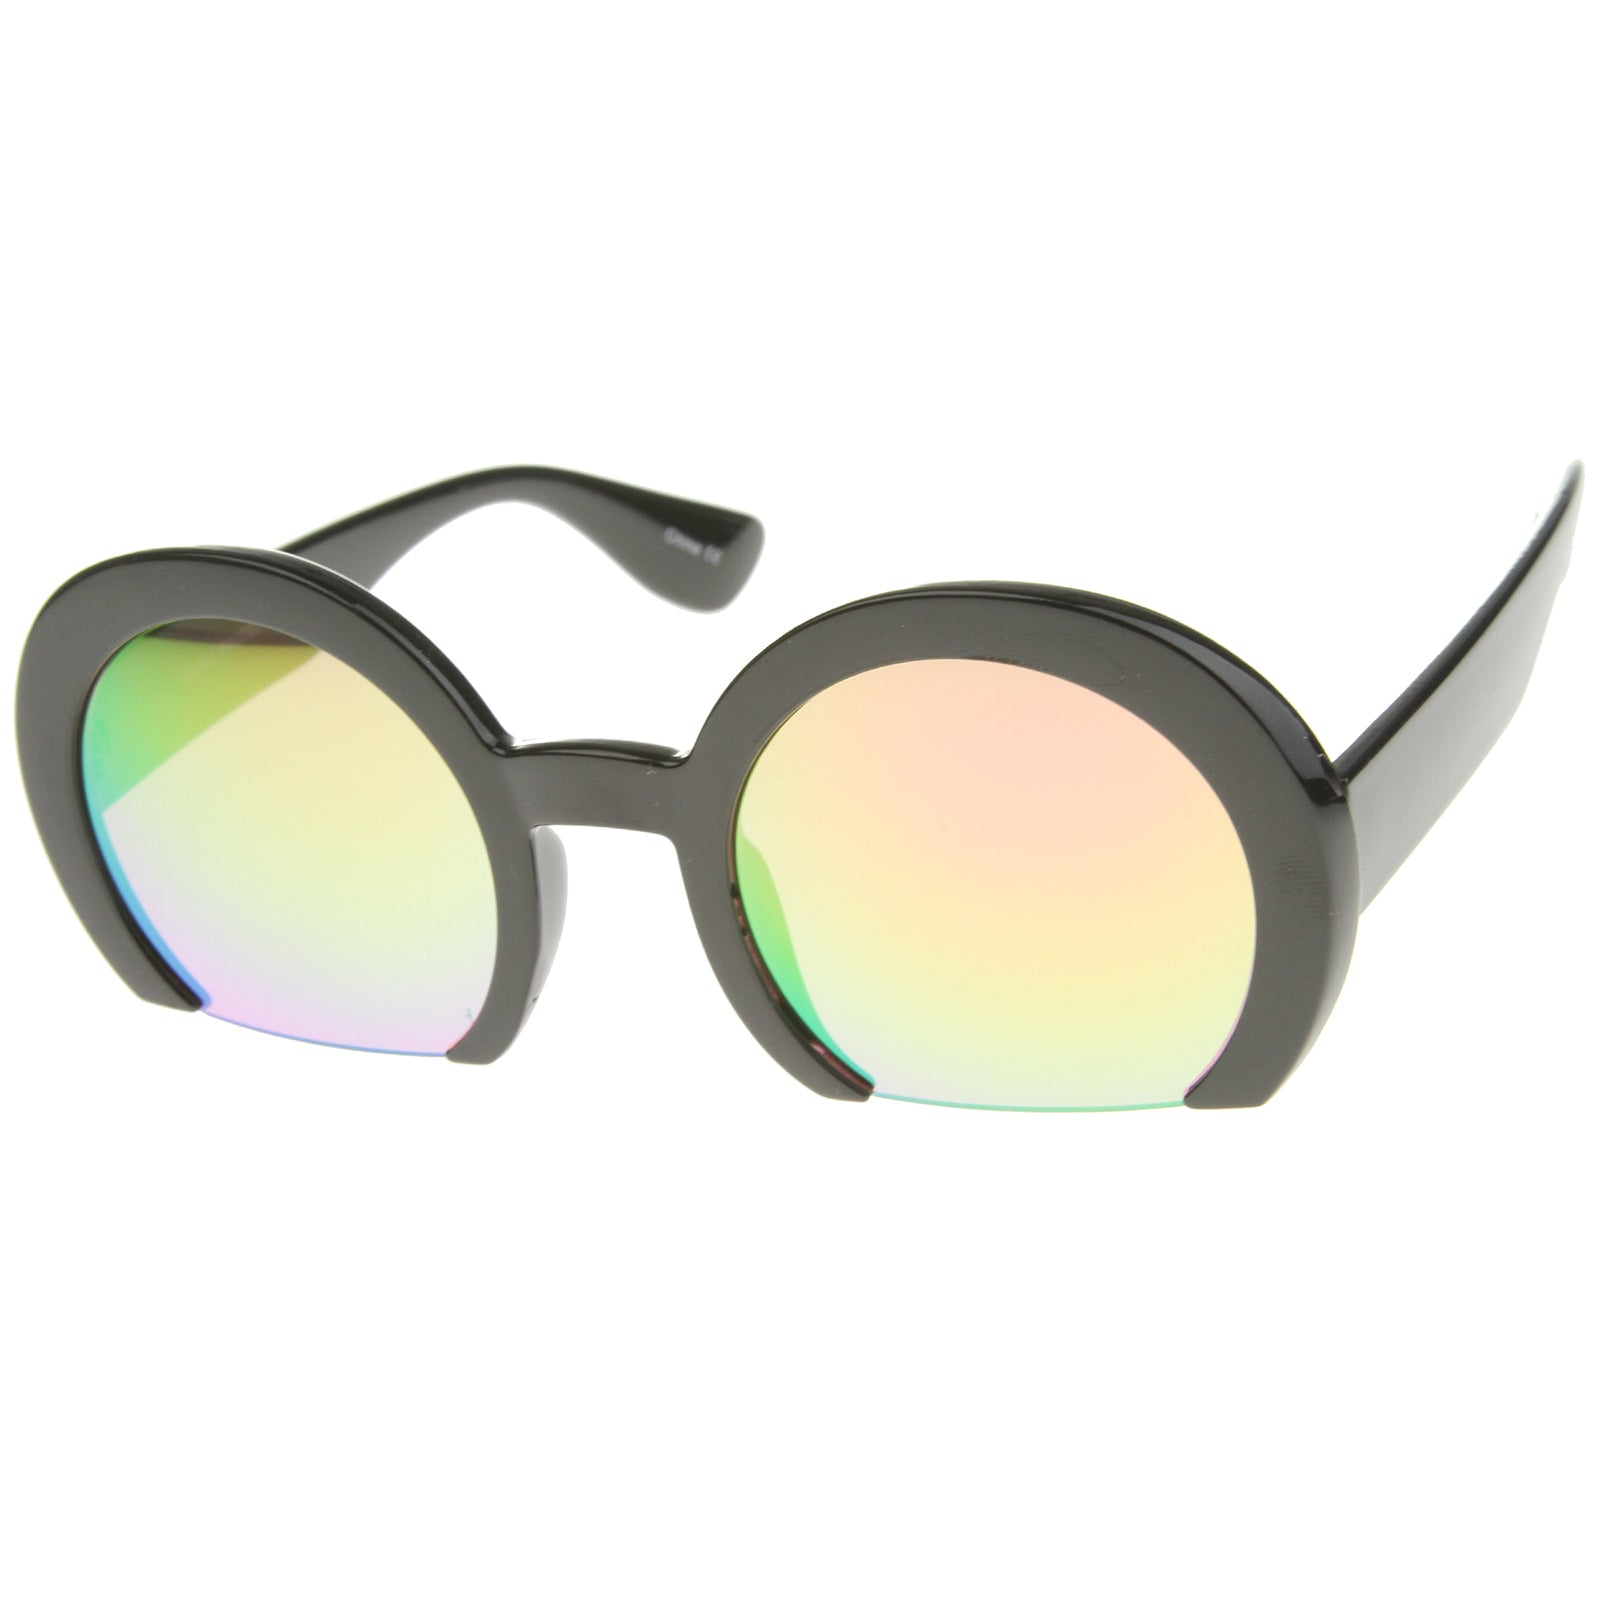 Women's Oversize Semi-Rimless Flat Bottom Mirror Lens Round Sunglasses 56mm - sunglass.la - 2